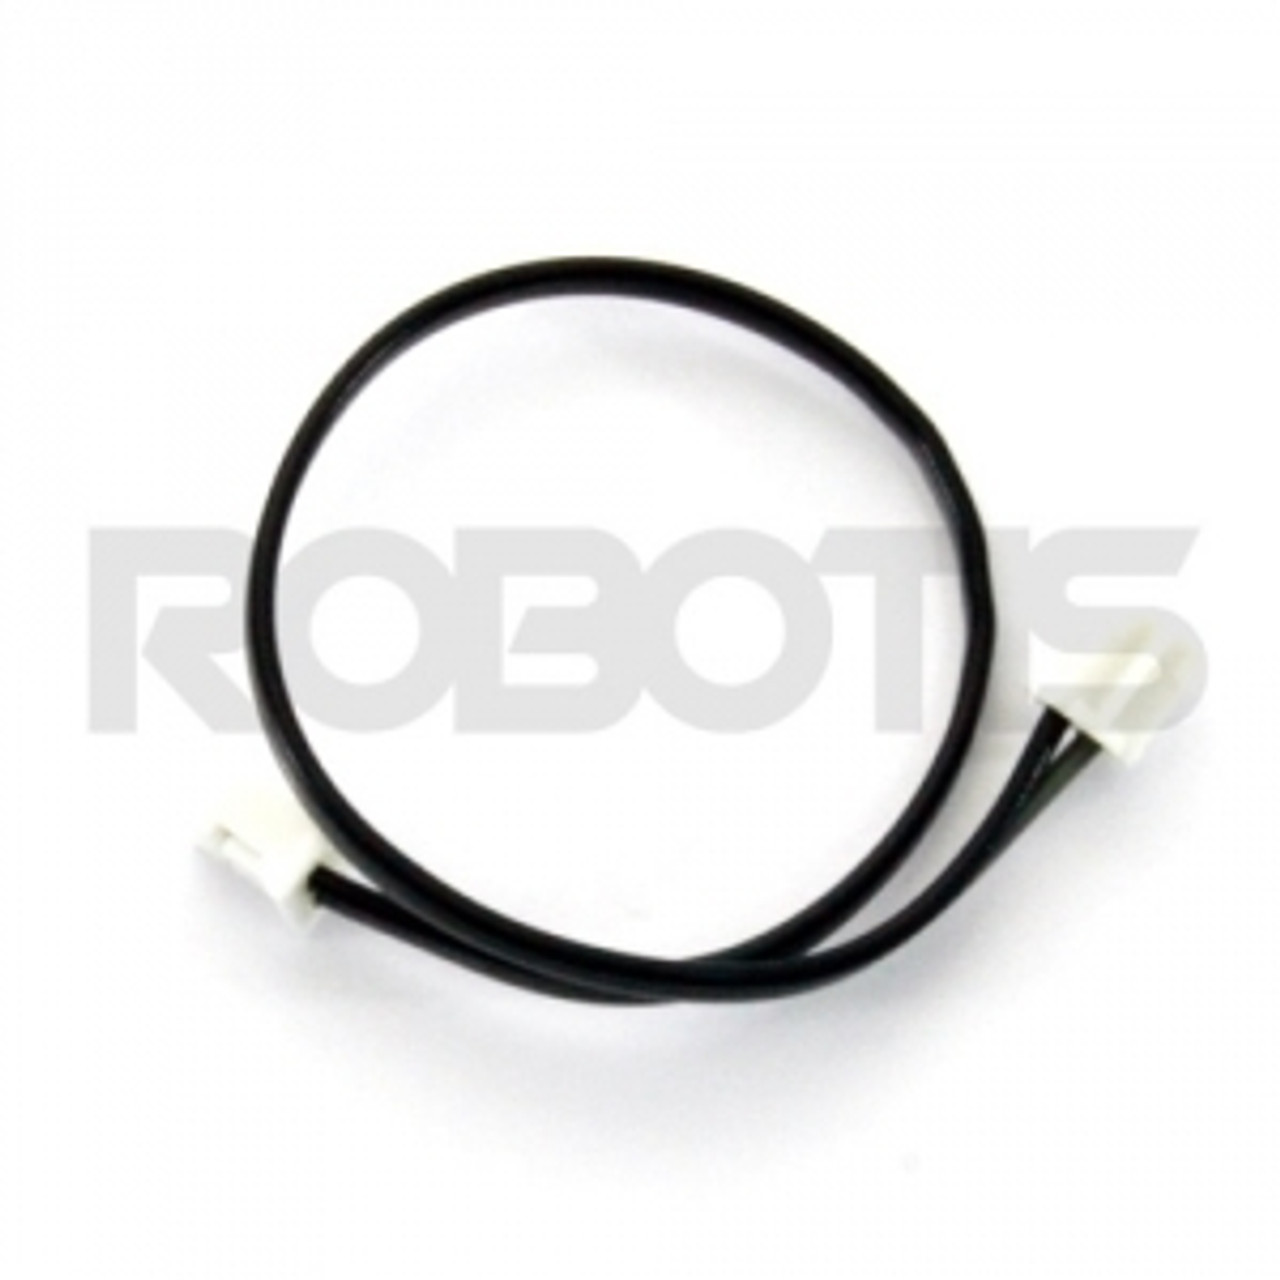 Robot Cable-2P 105mm (Battery Box) 4pcs